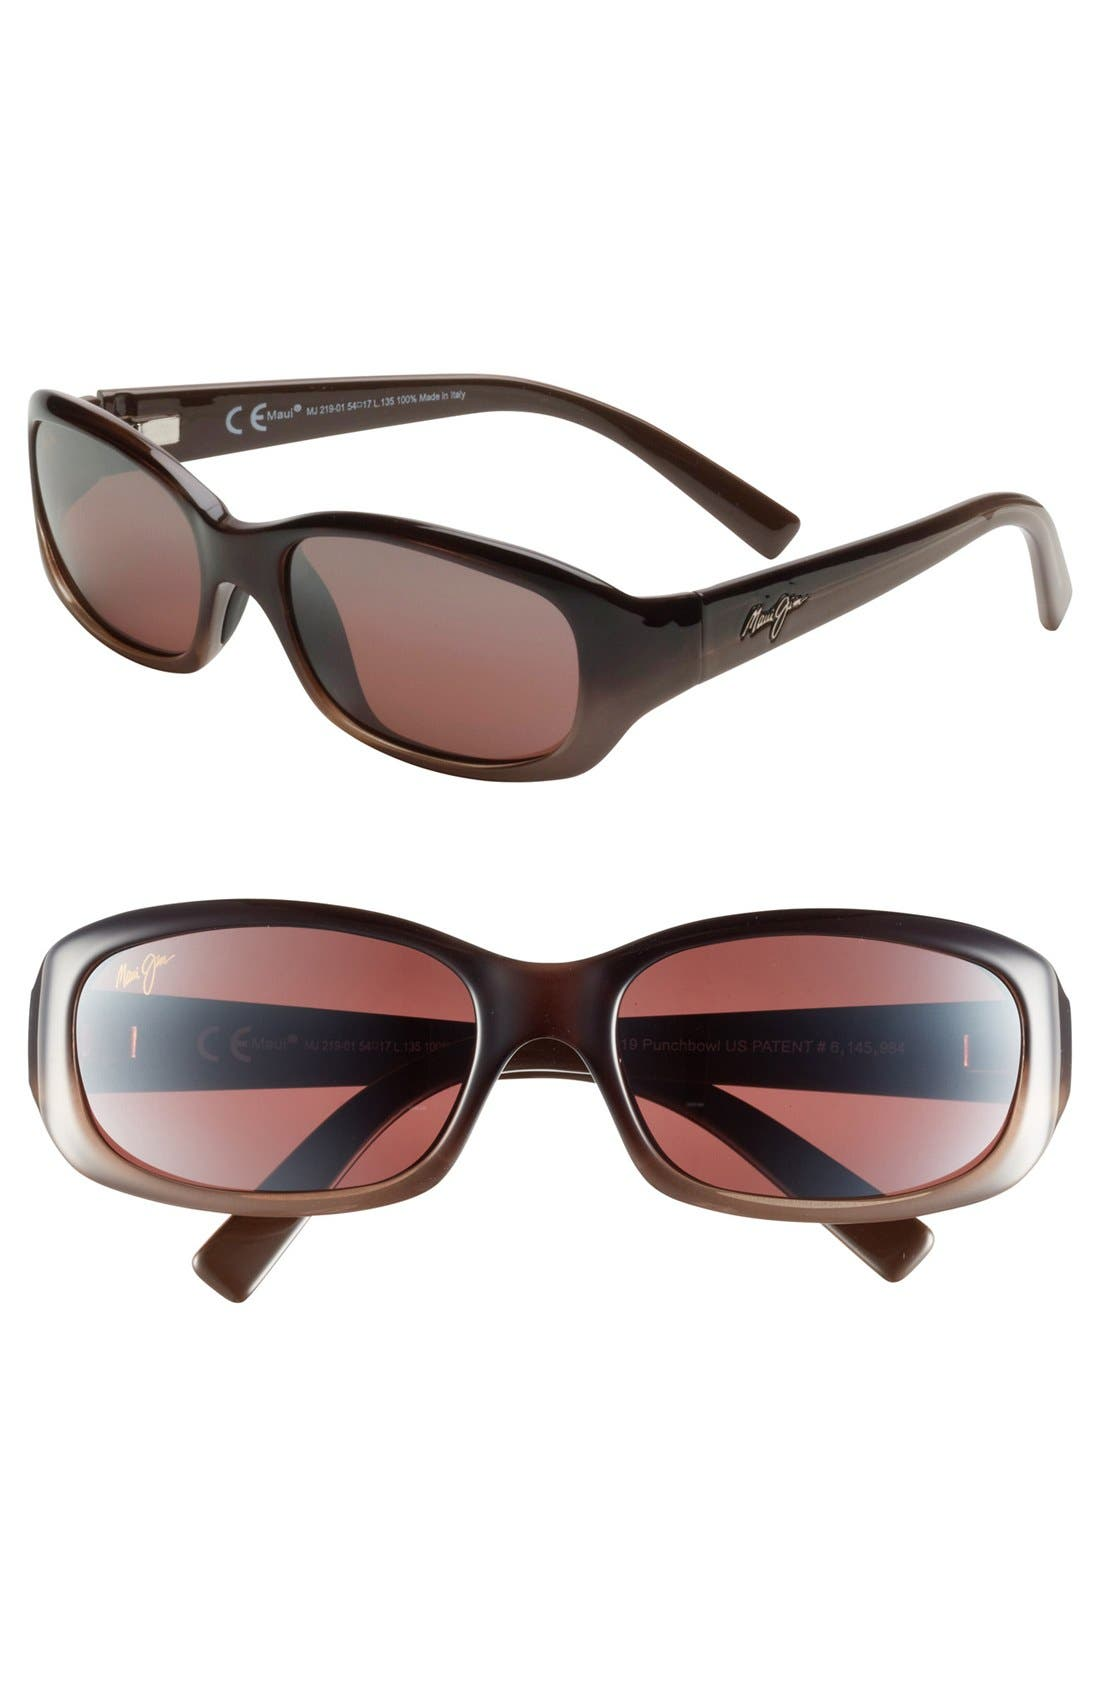 Punchbowl 54mm PolarizedPlus<sup>®</sup> Sunglasses,                         Main,                         color, Chocolate Fade